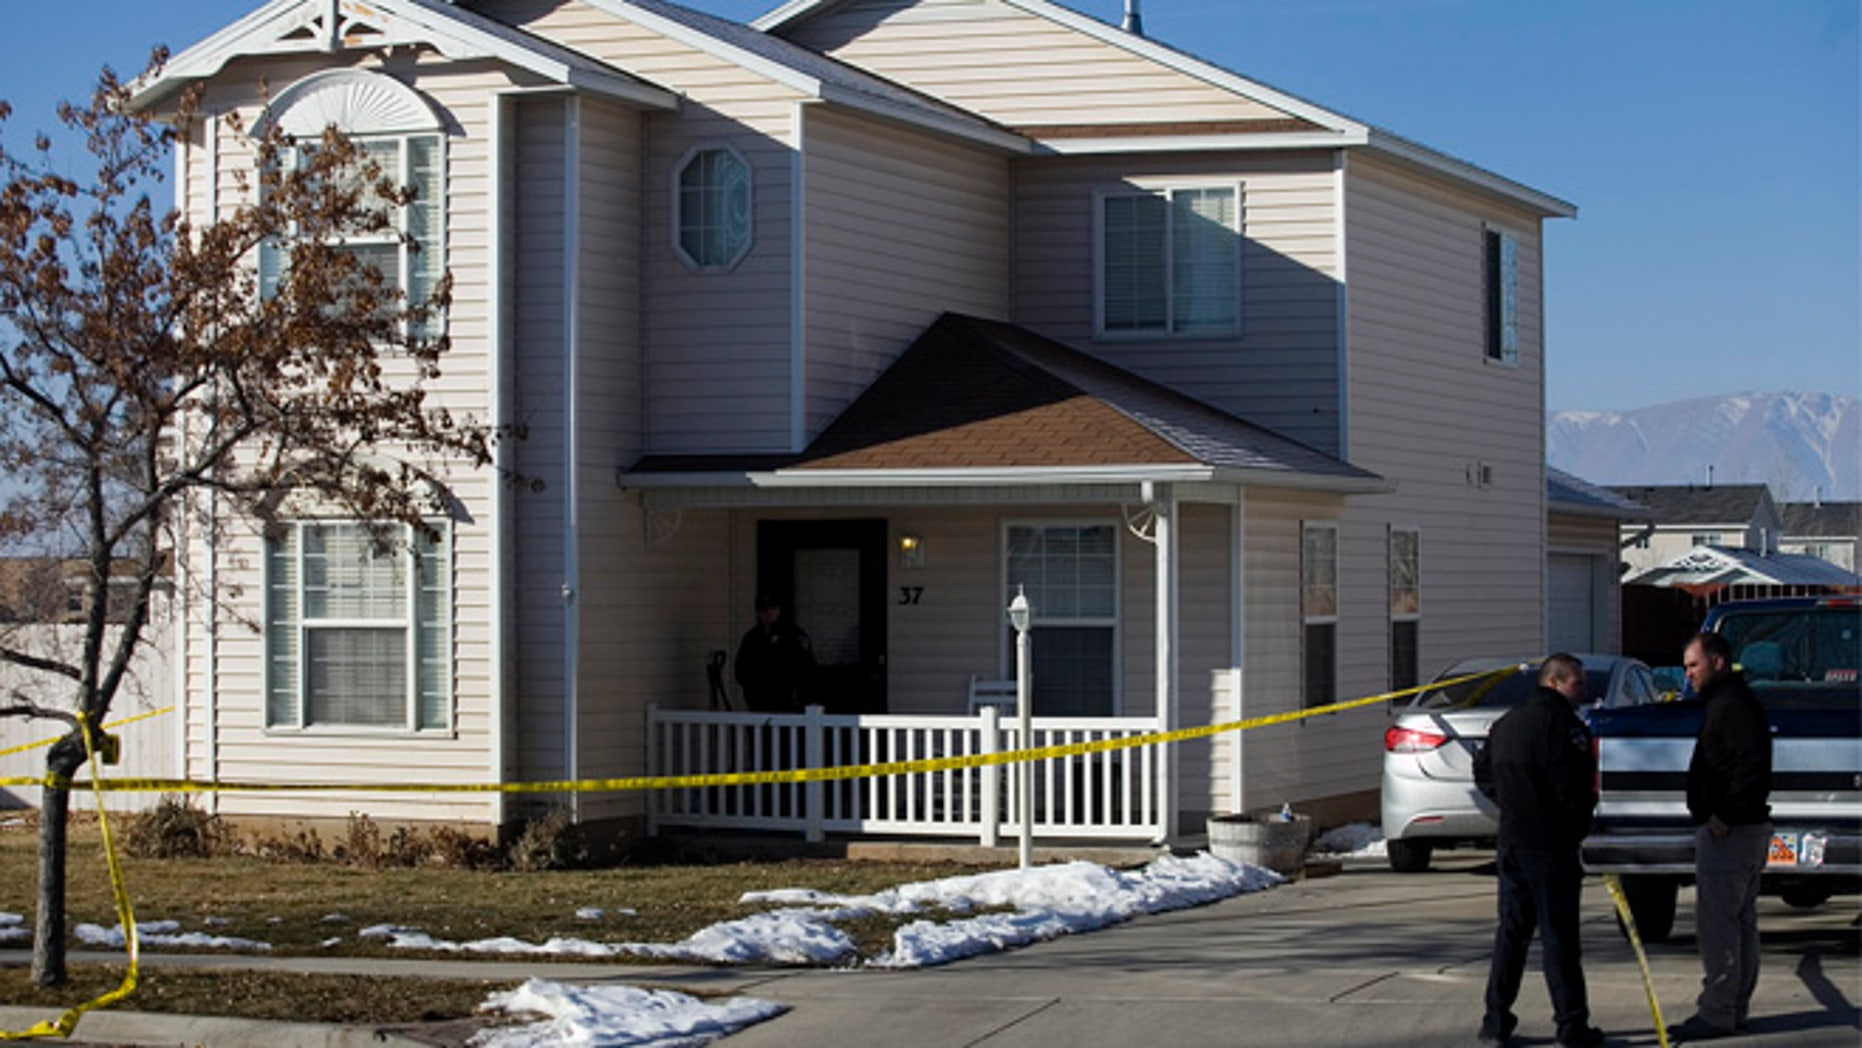 Jan. 17: Investigators put police tape in front of a home in Spanish Fork, Utah, where five people were found dead on Thursday.